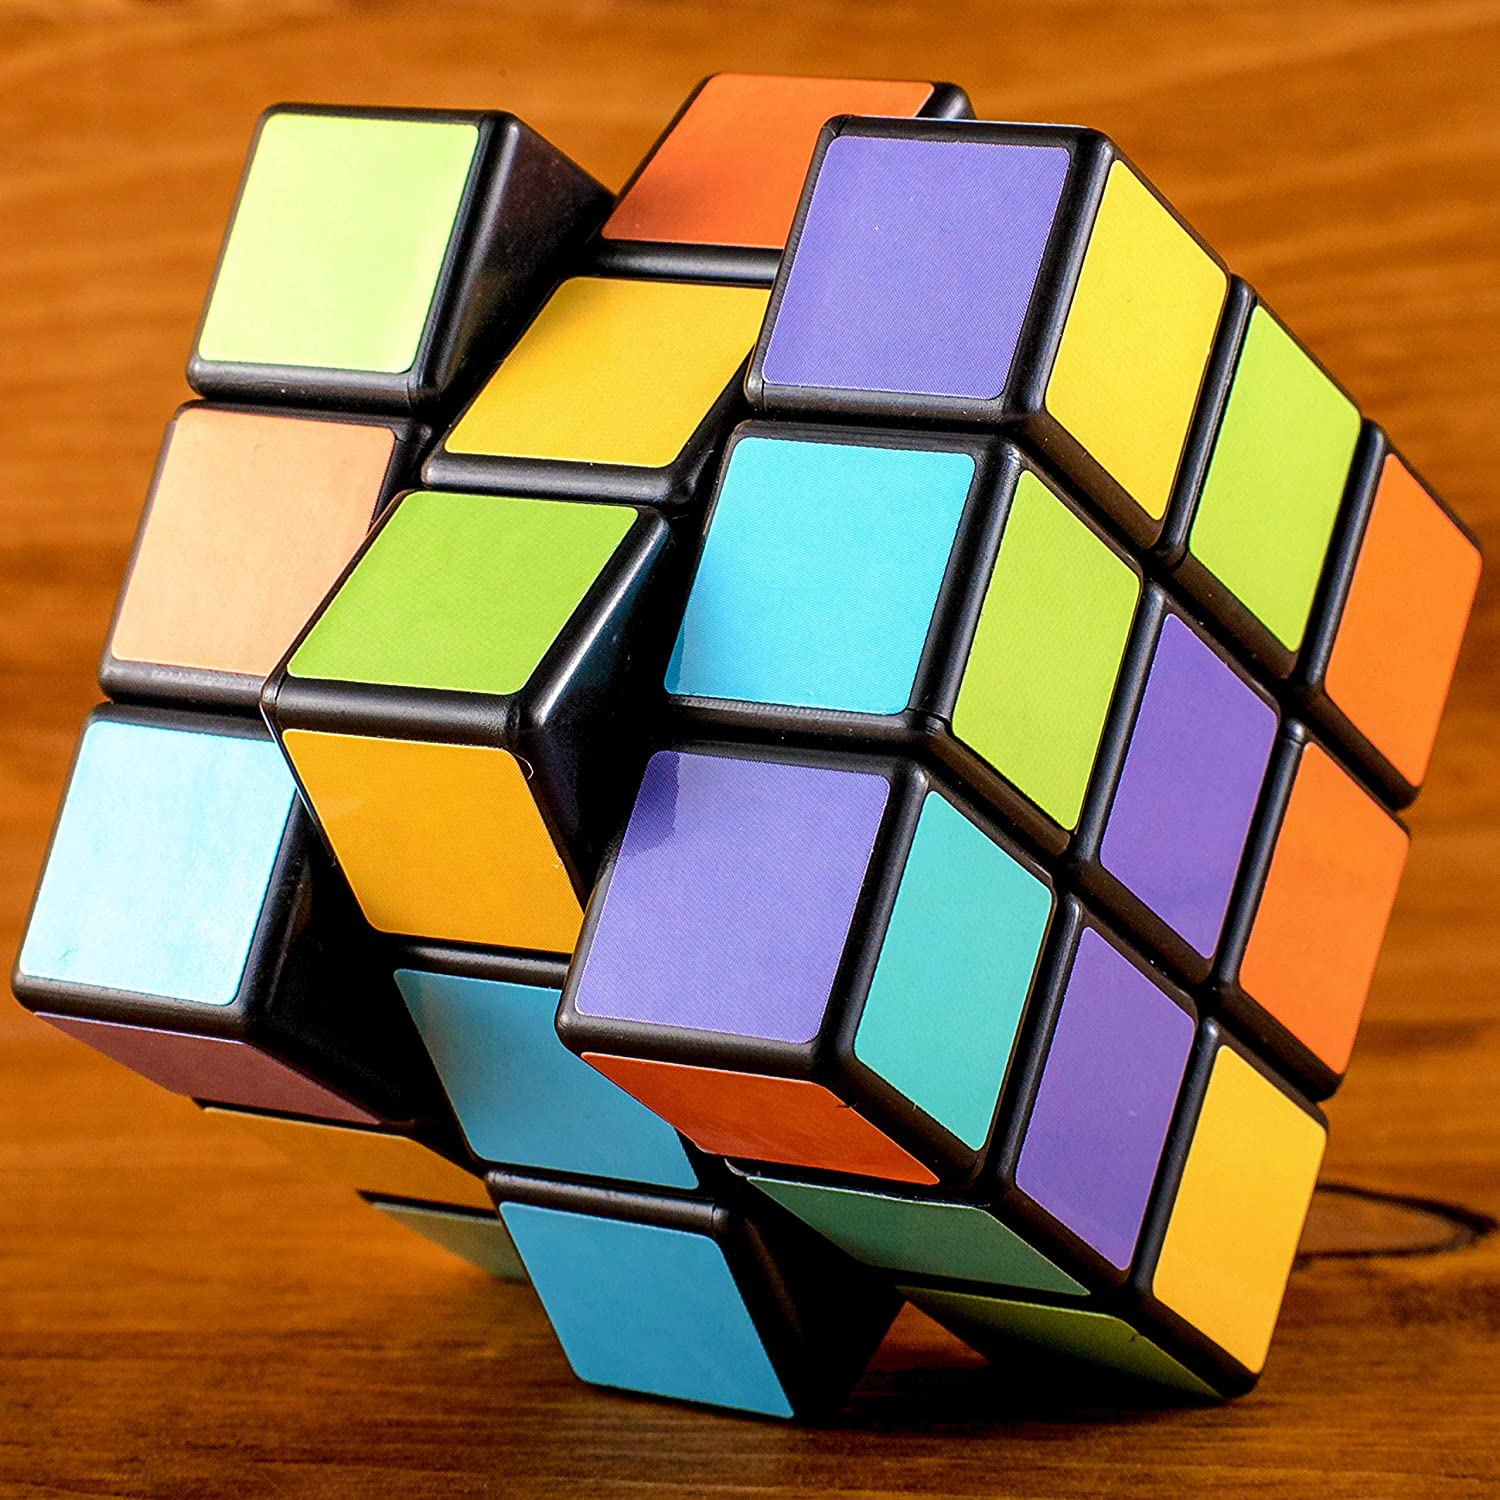 Amazon.com: Rubiks Cube Speed Cube Classic Puzzle Game for ...